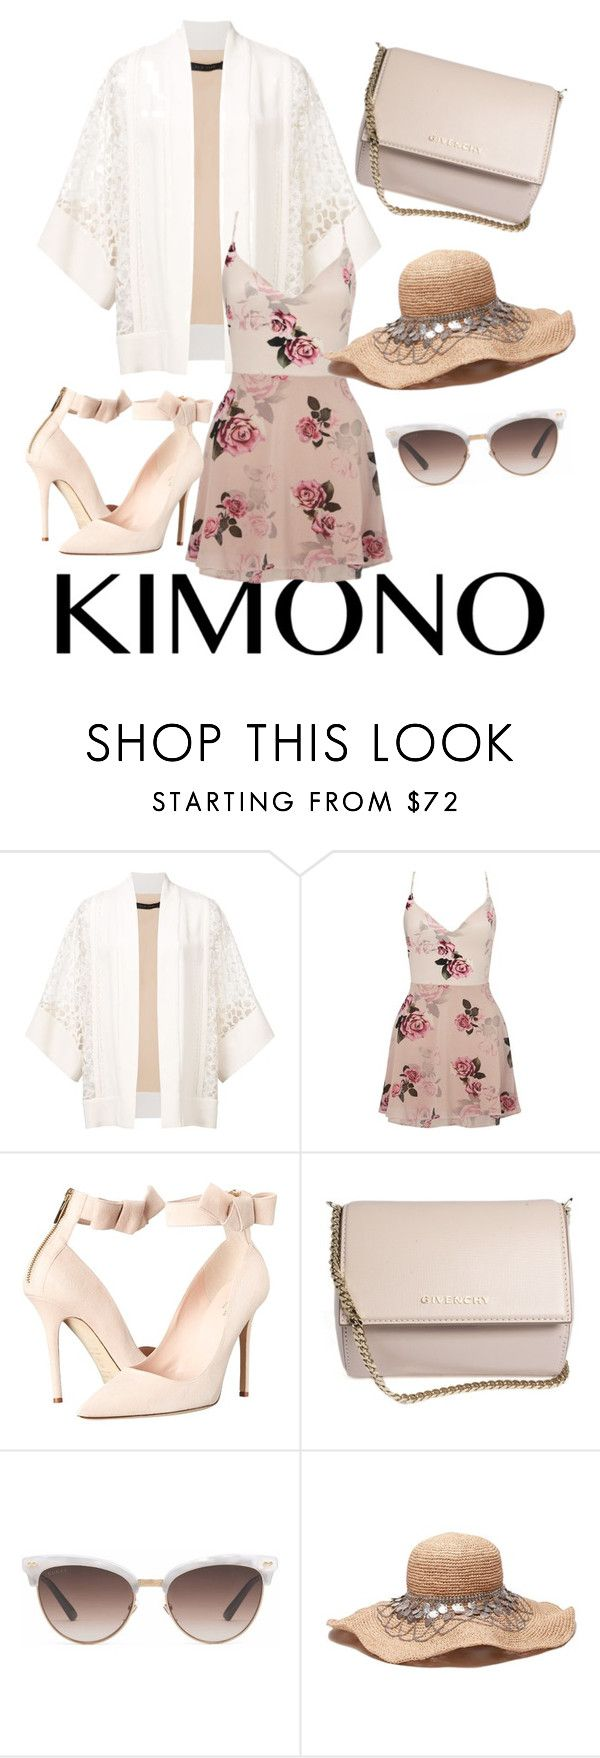 """kimono beauty"" by sillysister11 ❤ liked on Polyvore featuring Elie Saab, Lipsy, Kate Spade, Givenchy, Gucci and kimonos"